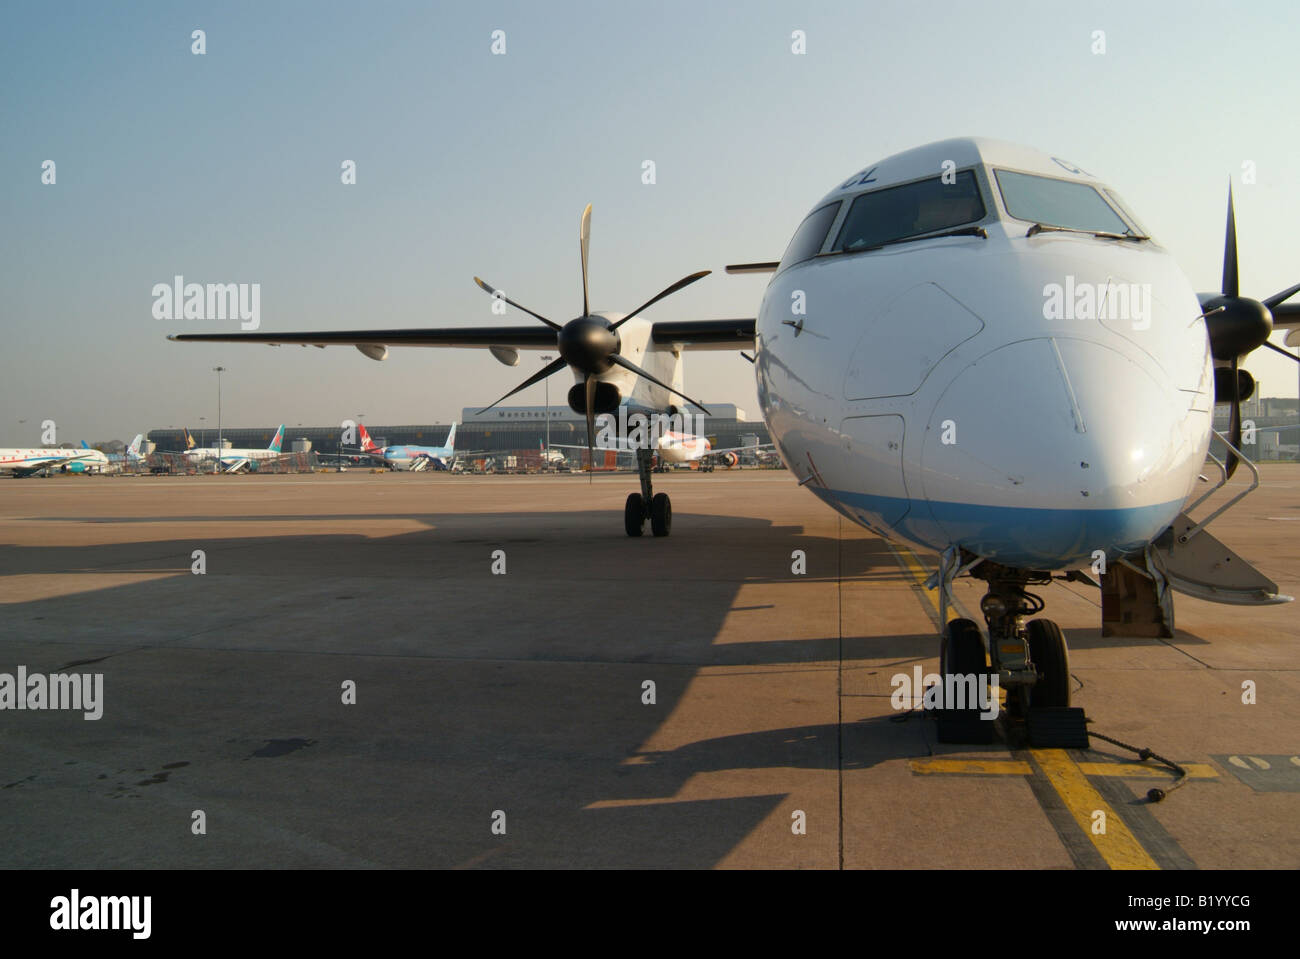 A parked Dash8 400 aircraft viewed from infront and shown against airport terminal buildings in the distance. - Stock Image